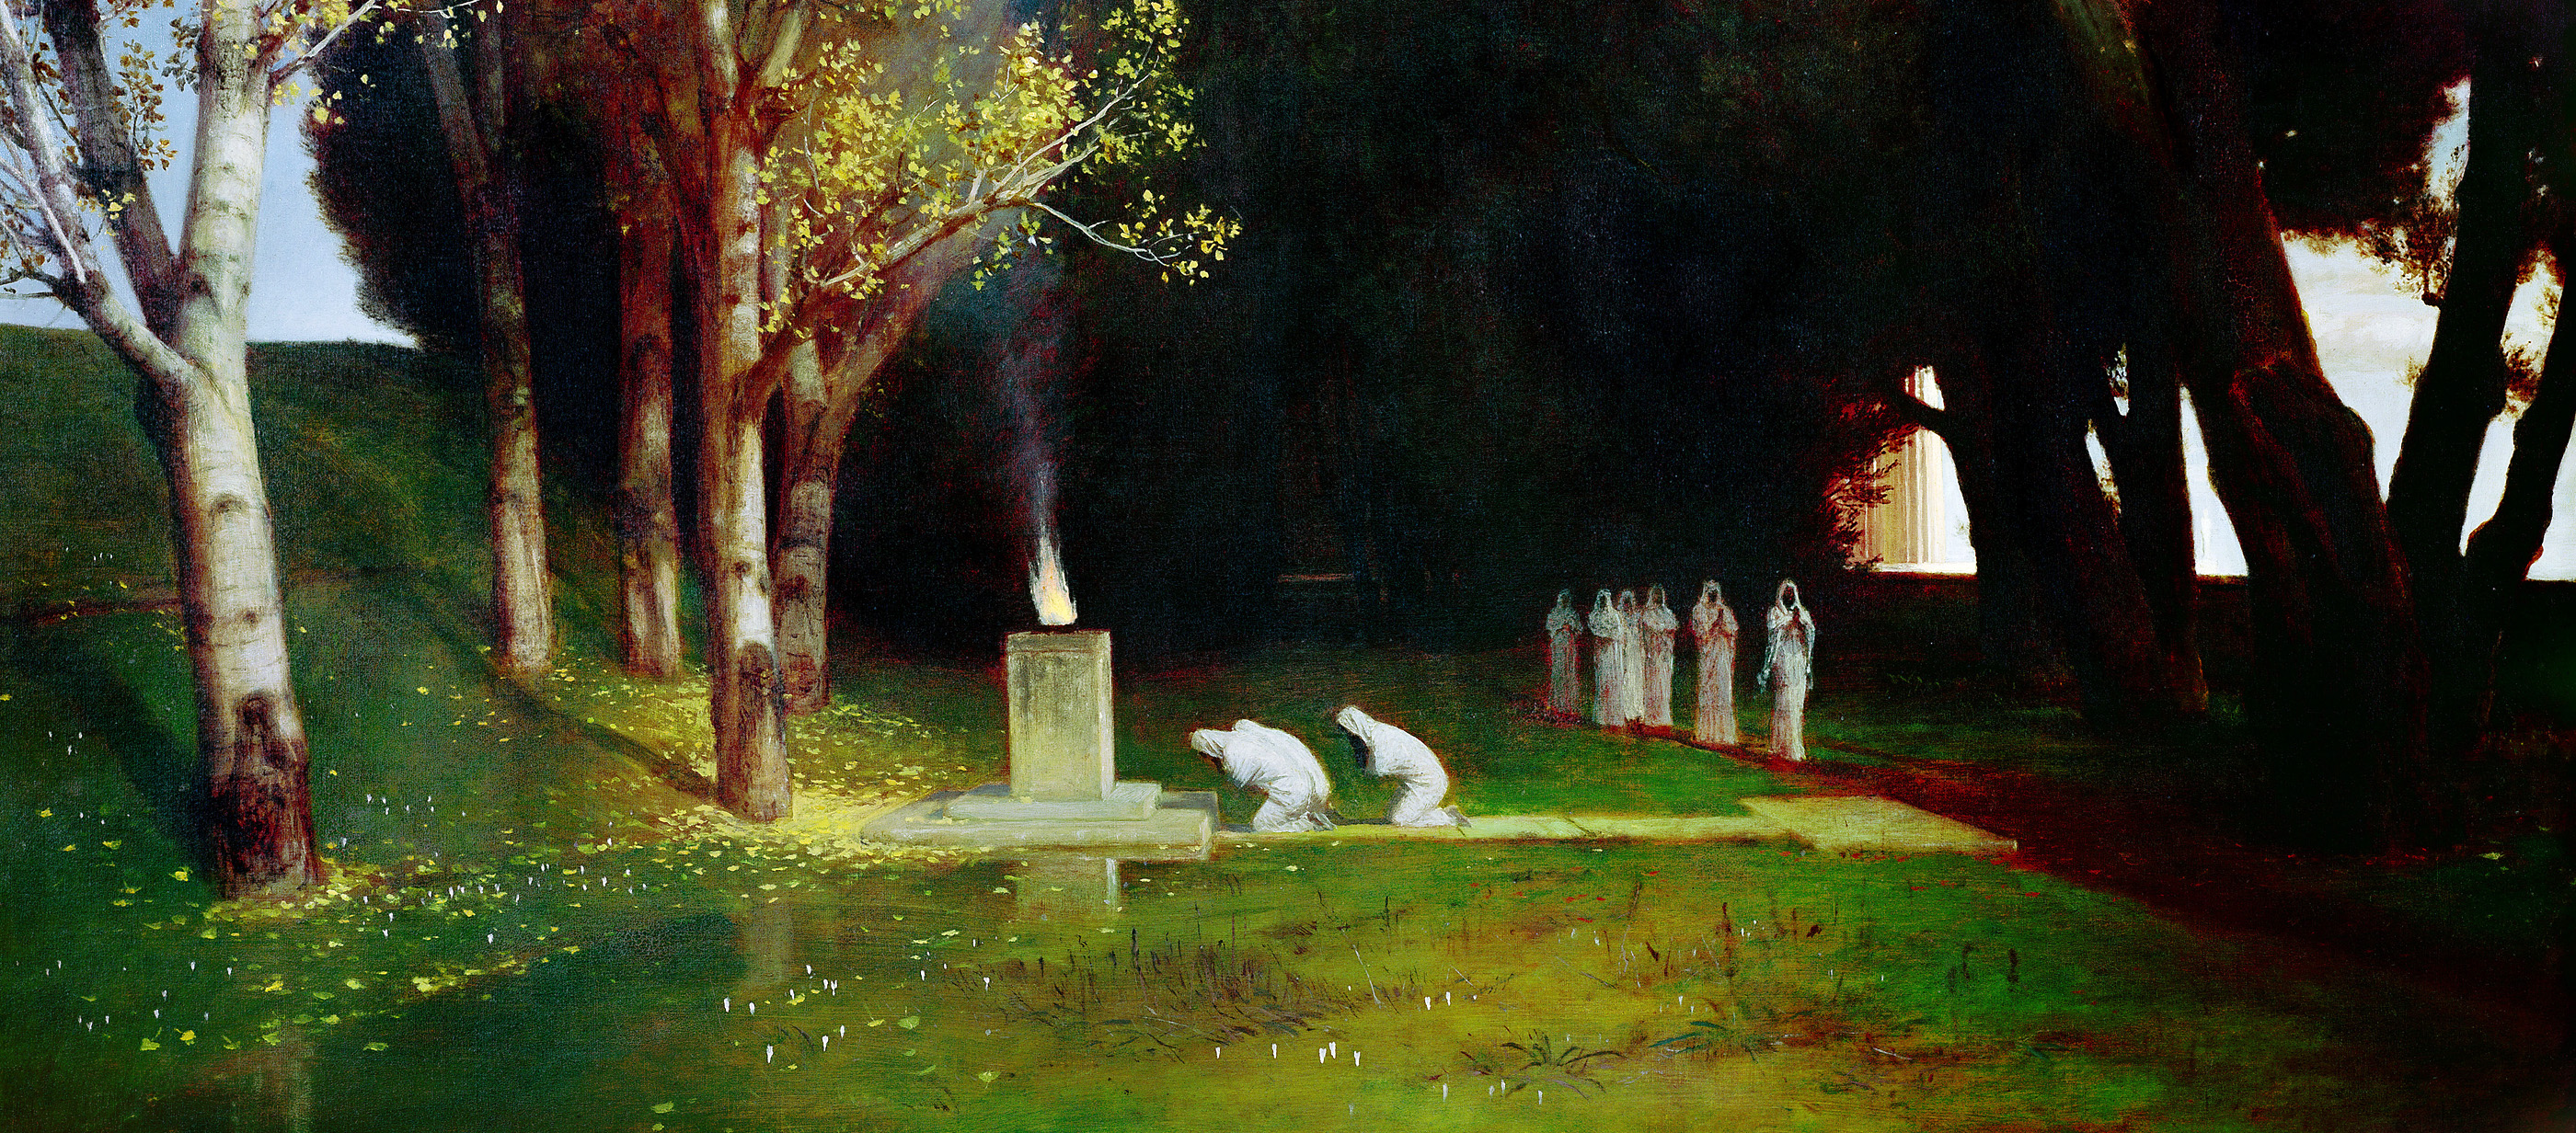 The Sacred Grove, by Arnold Böcklin, 1882. Kunsthalle Hamburg, Germany.